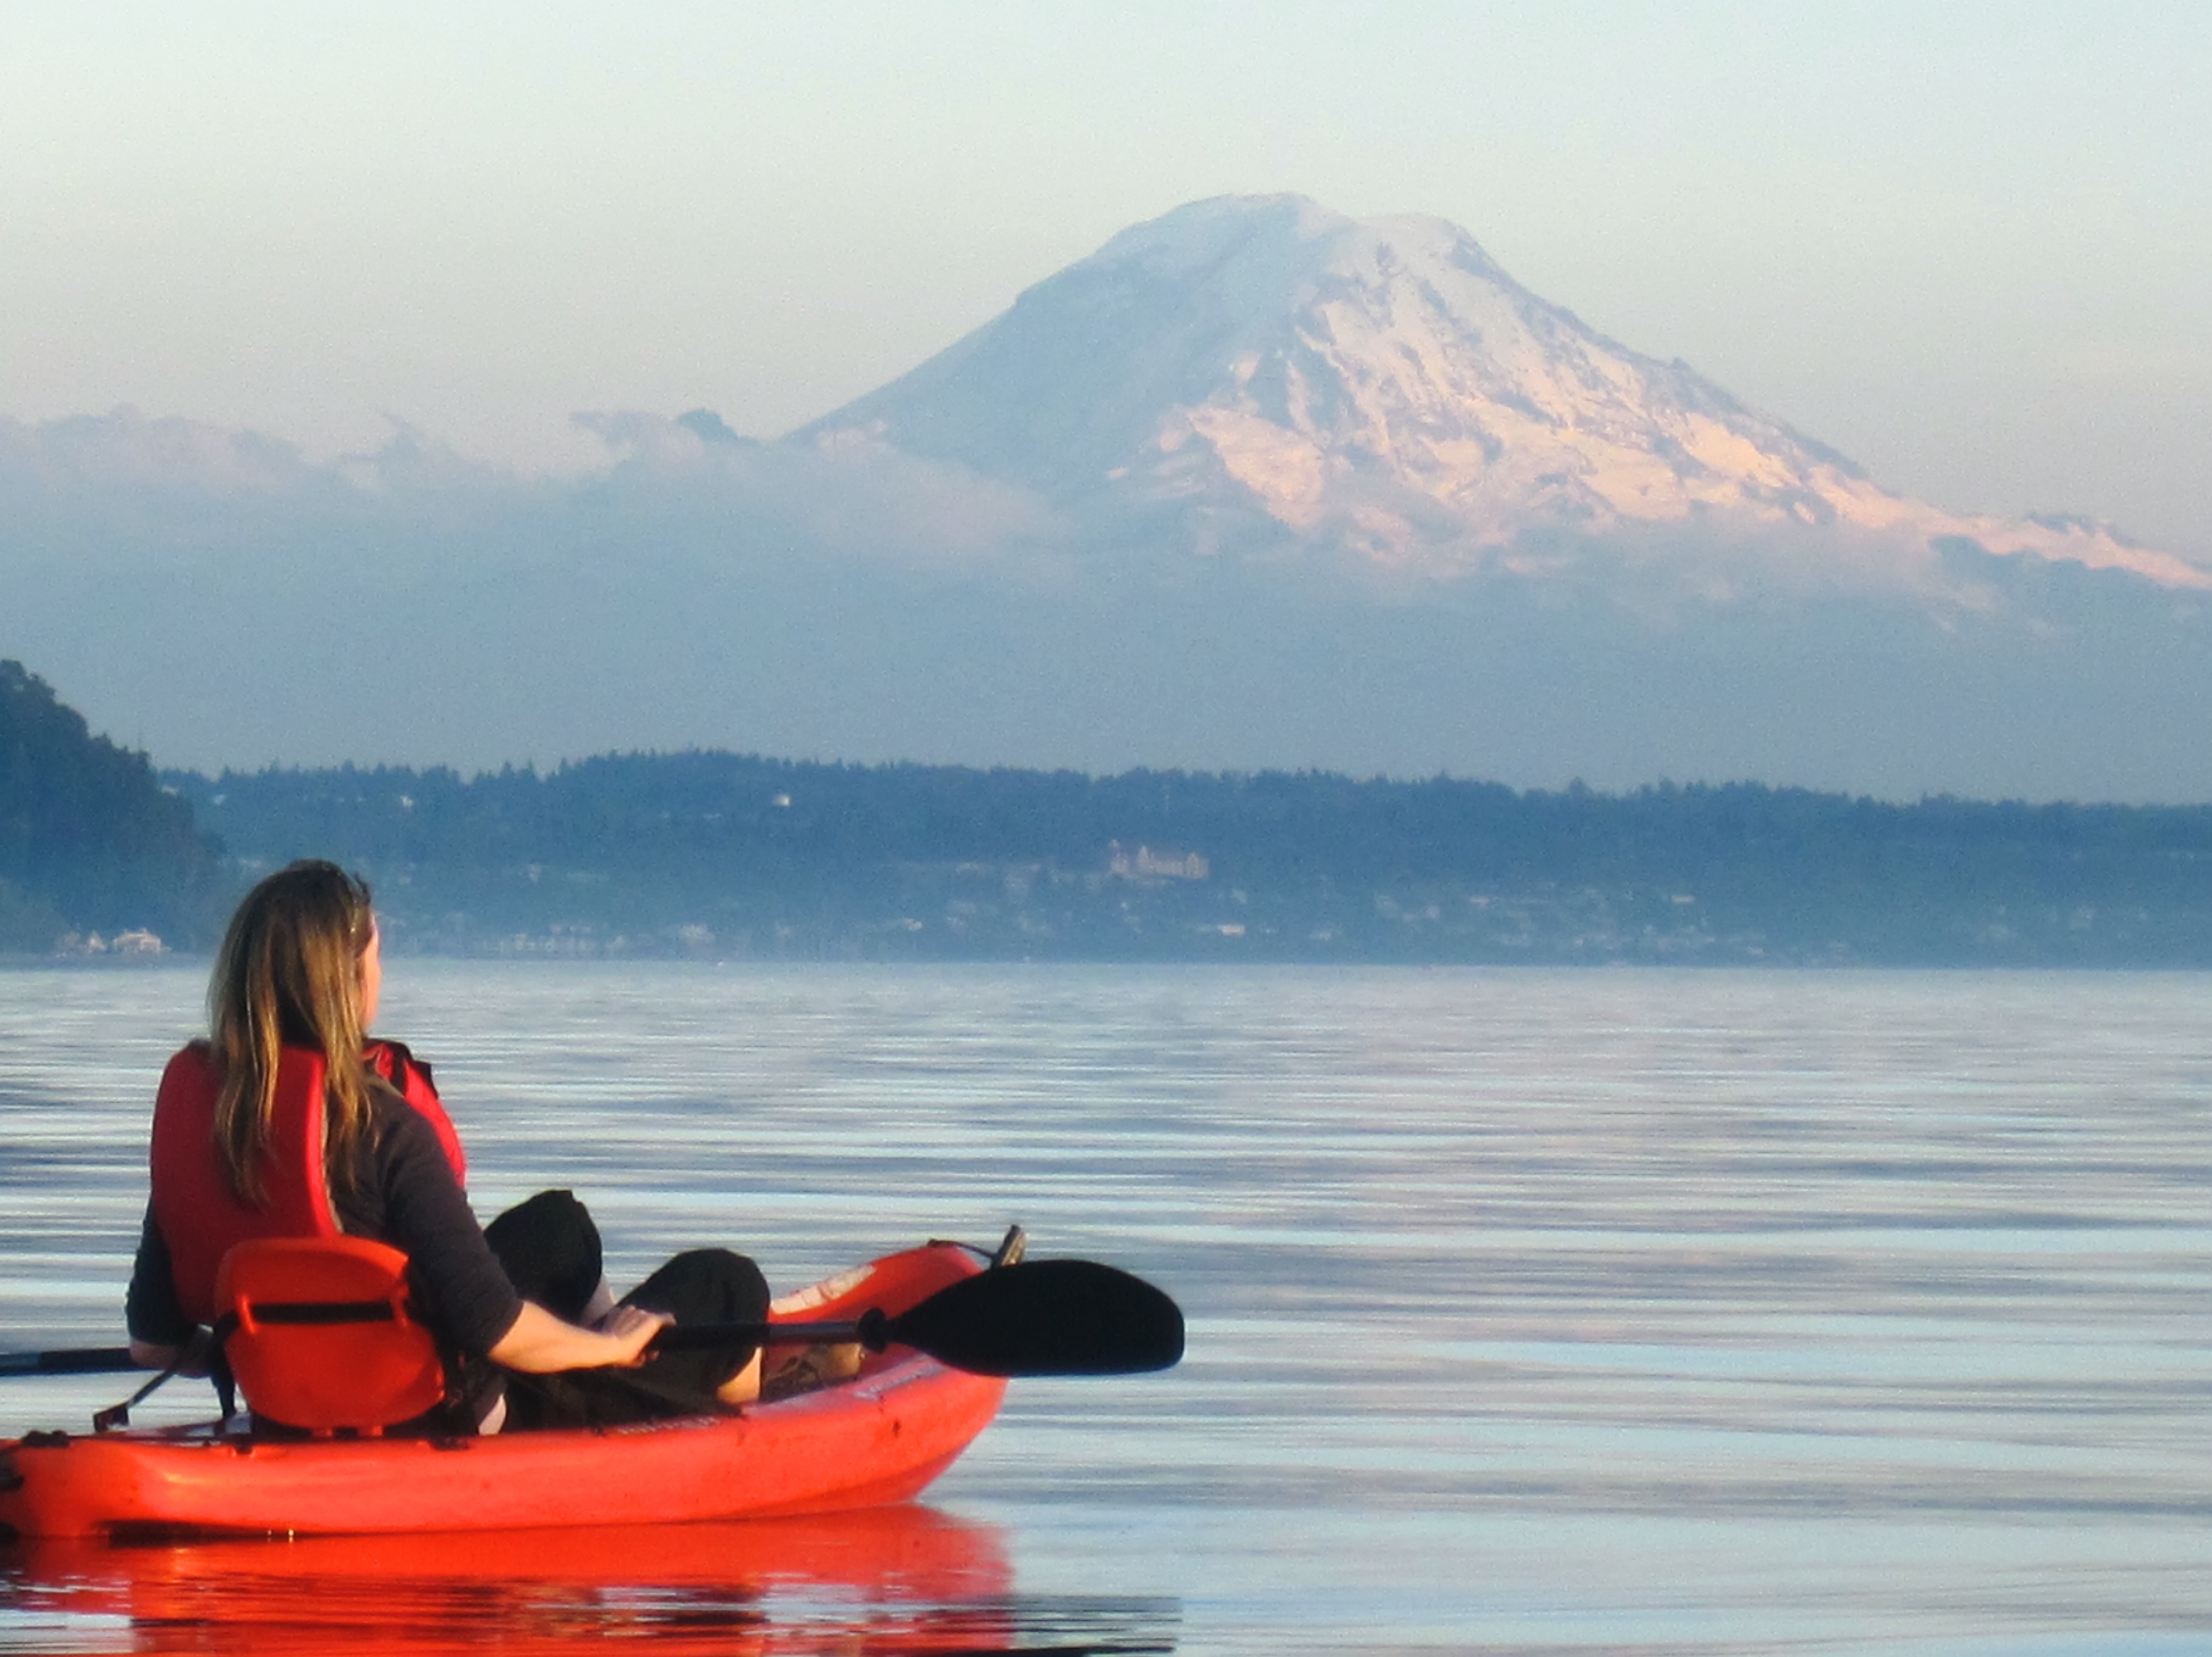 A woman kayaking on Puget Sound with Mount Rainier in the background